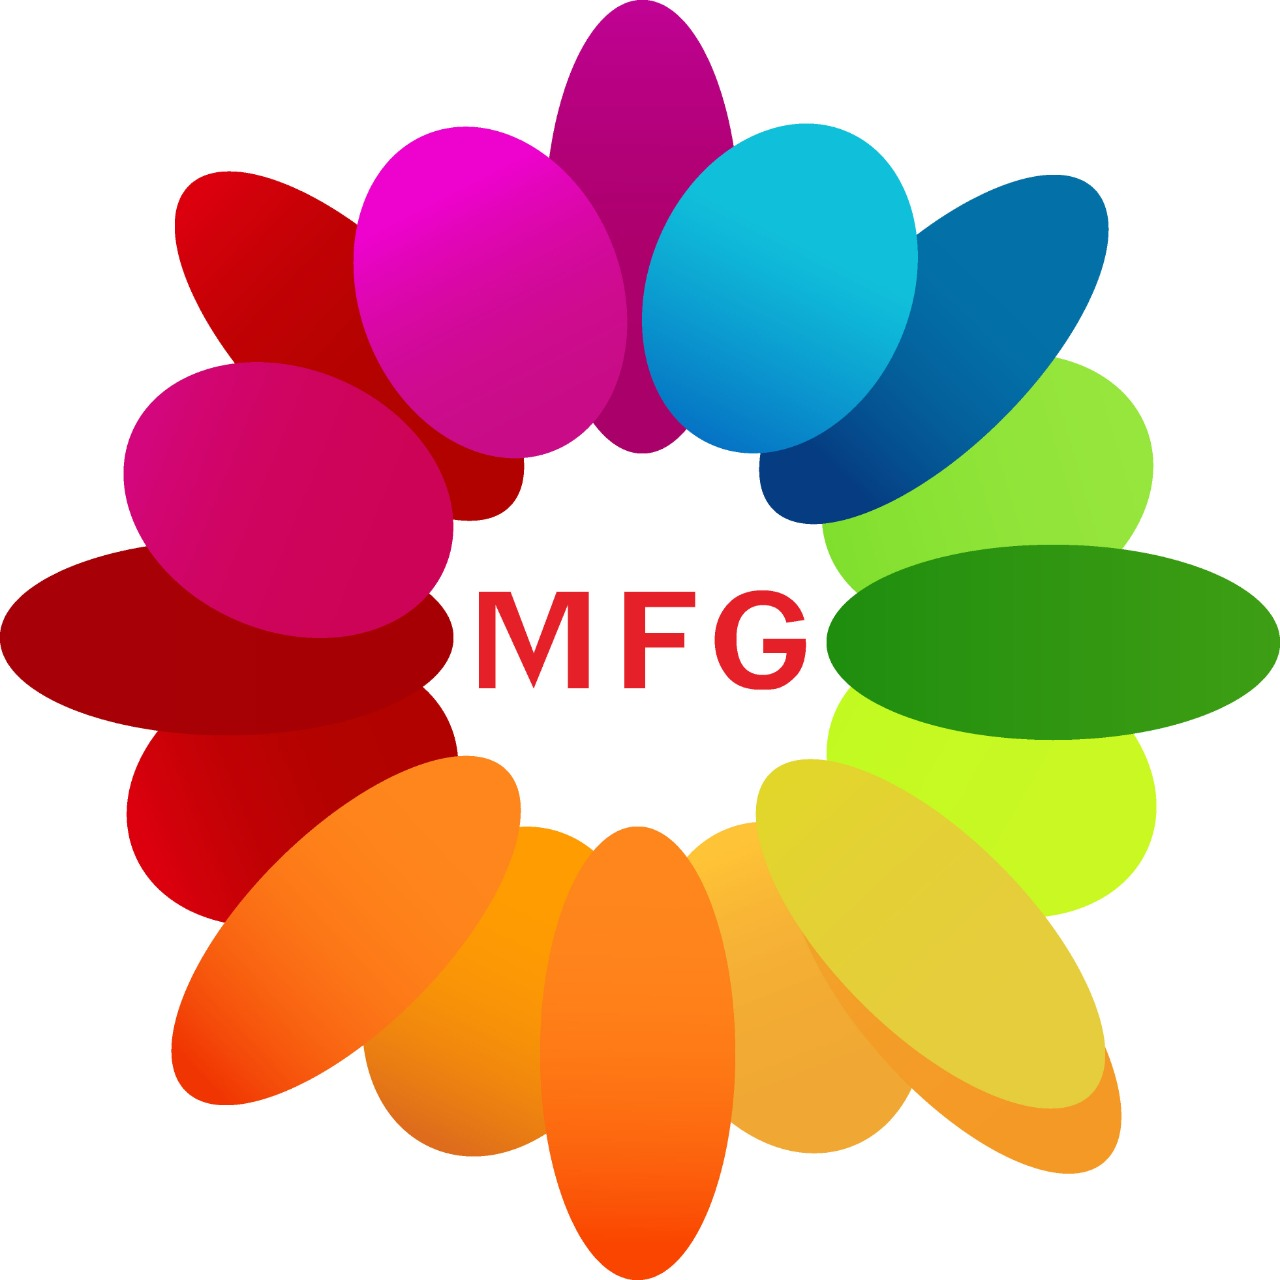 A Lovely Way To Surprise Your Loved Ones...Just_get_it_delivered , a_room_full_of_red_roses..._20_basket_of_15_red_roses_each